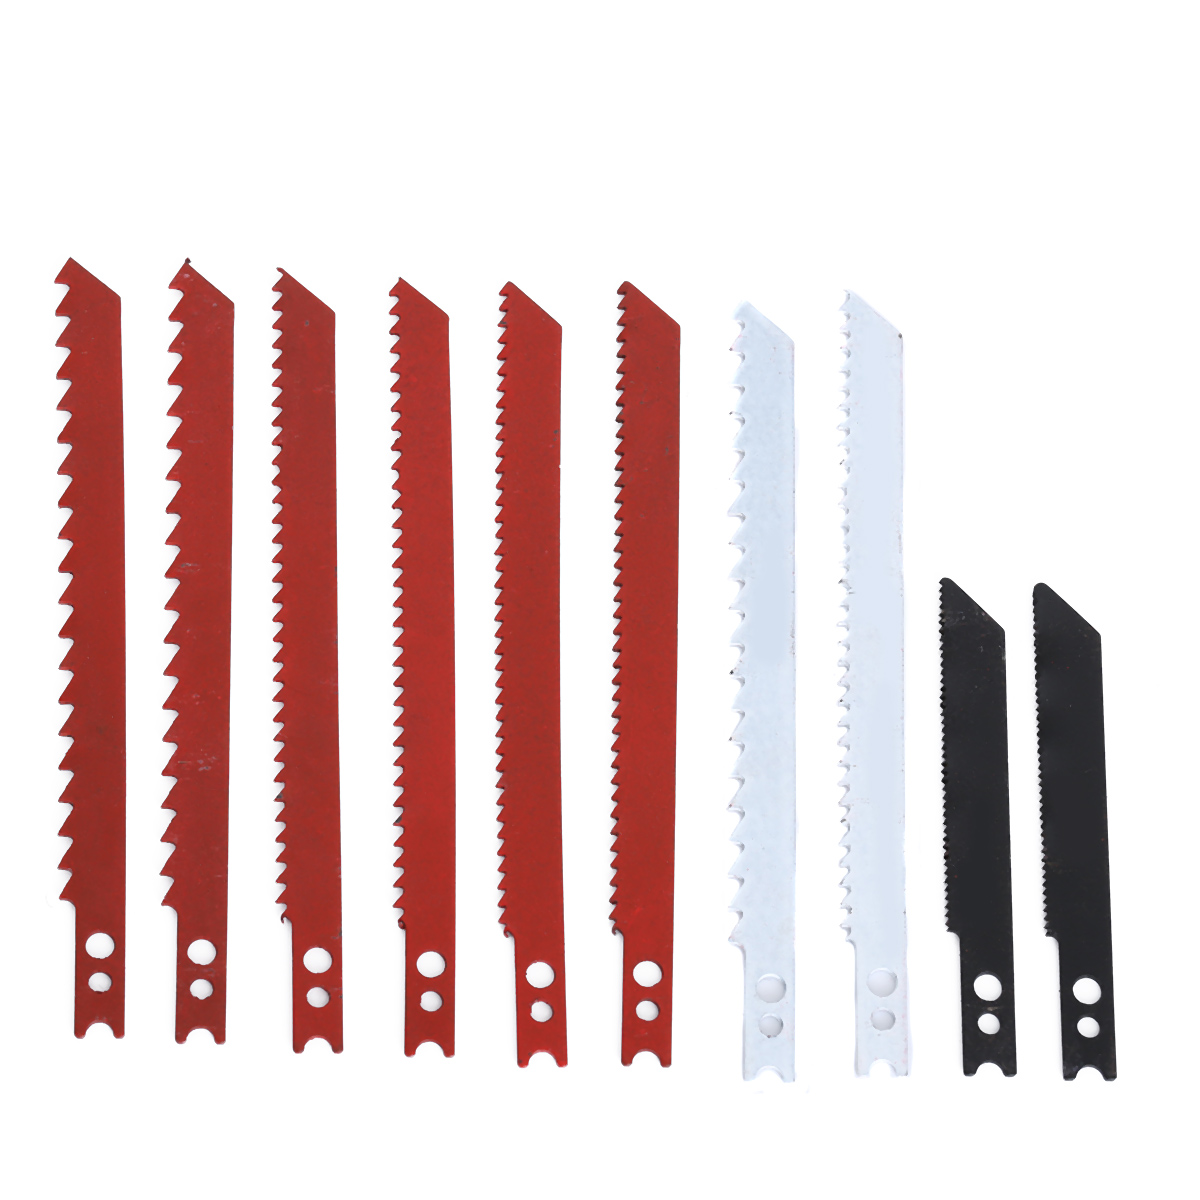 10pcs/set Durable Jigsaw Blades 60/97mm Jig Saw Blades Set For Cutting Metal Plastic Wood Power Tools